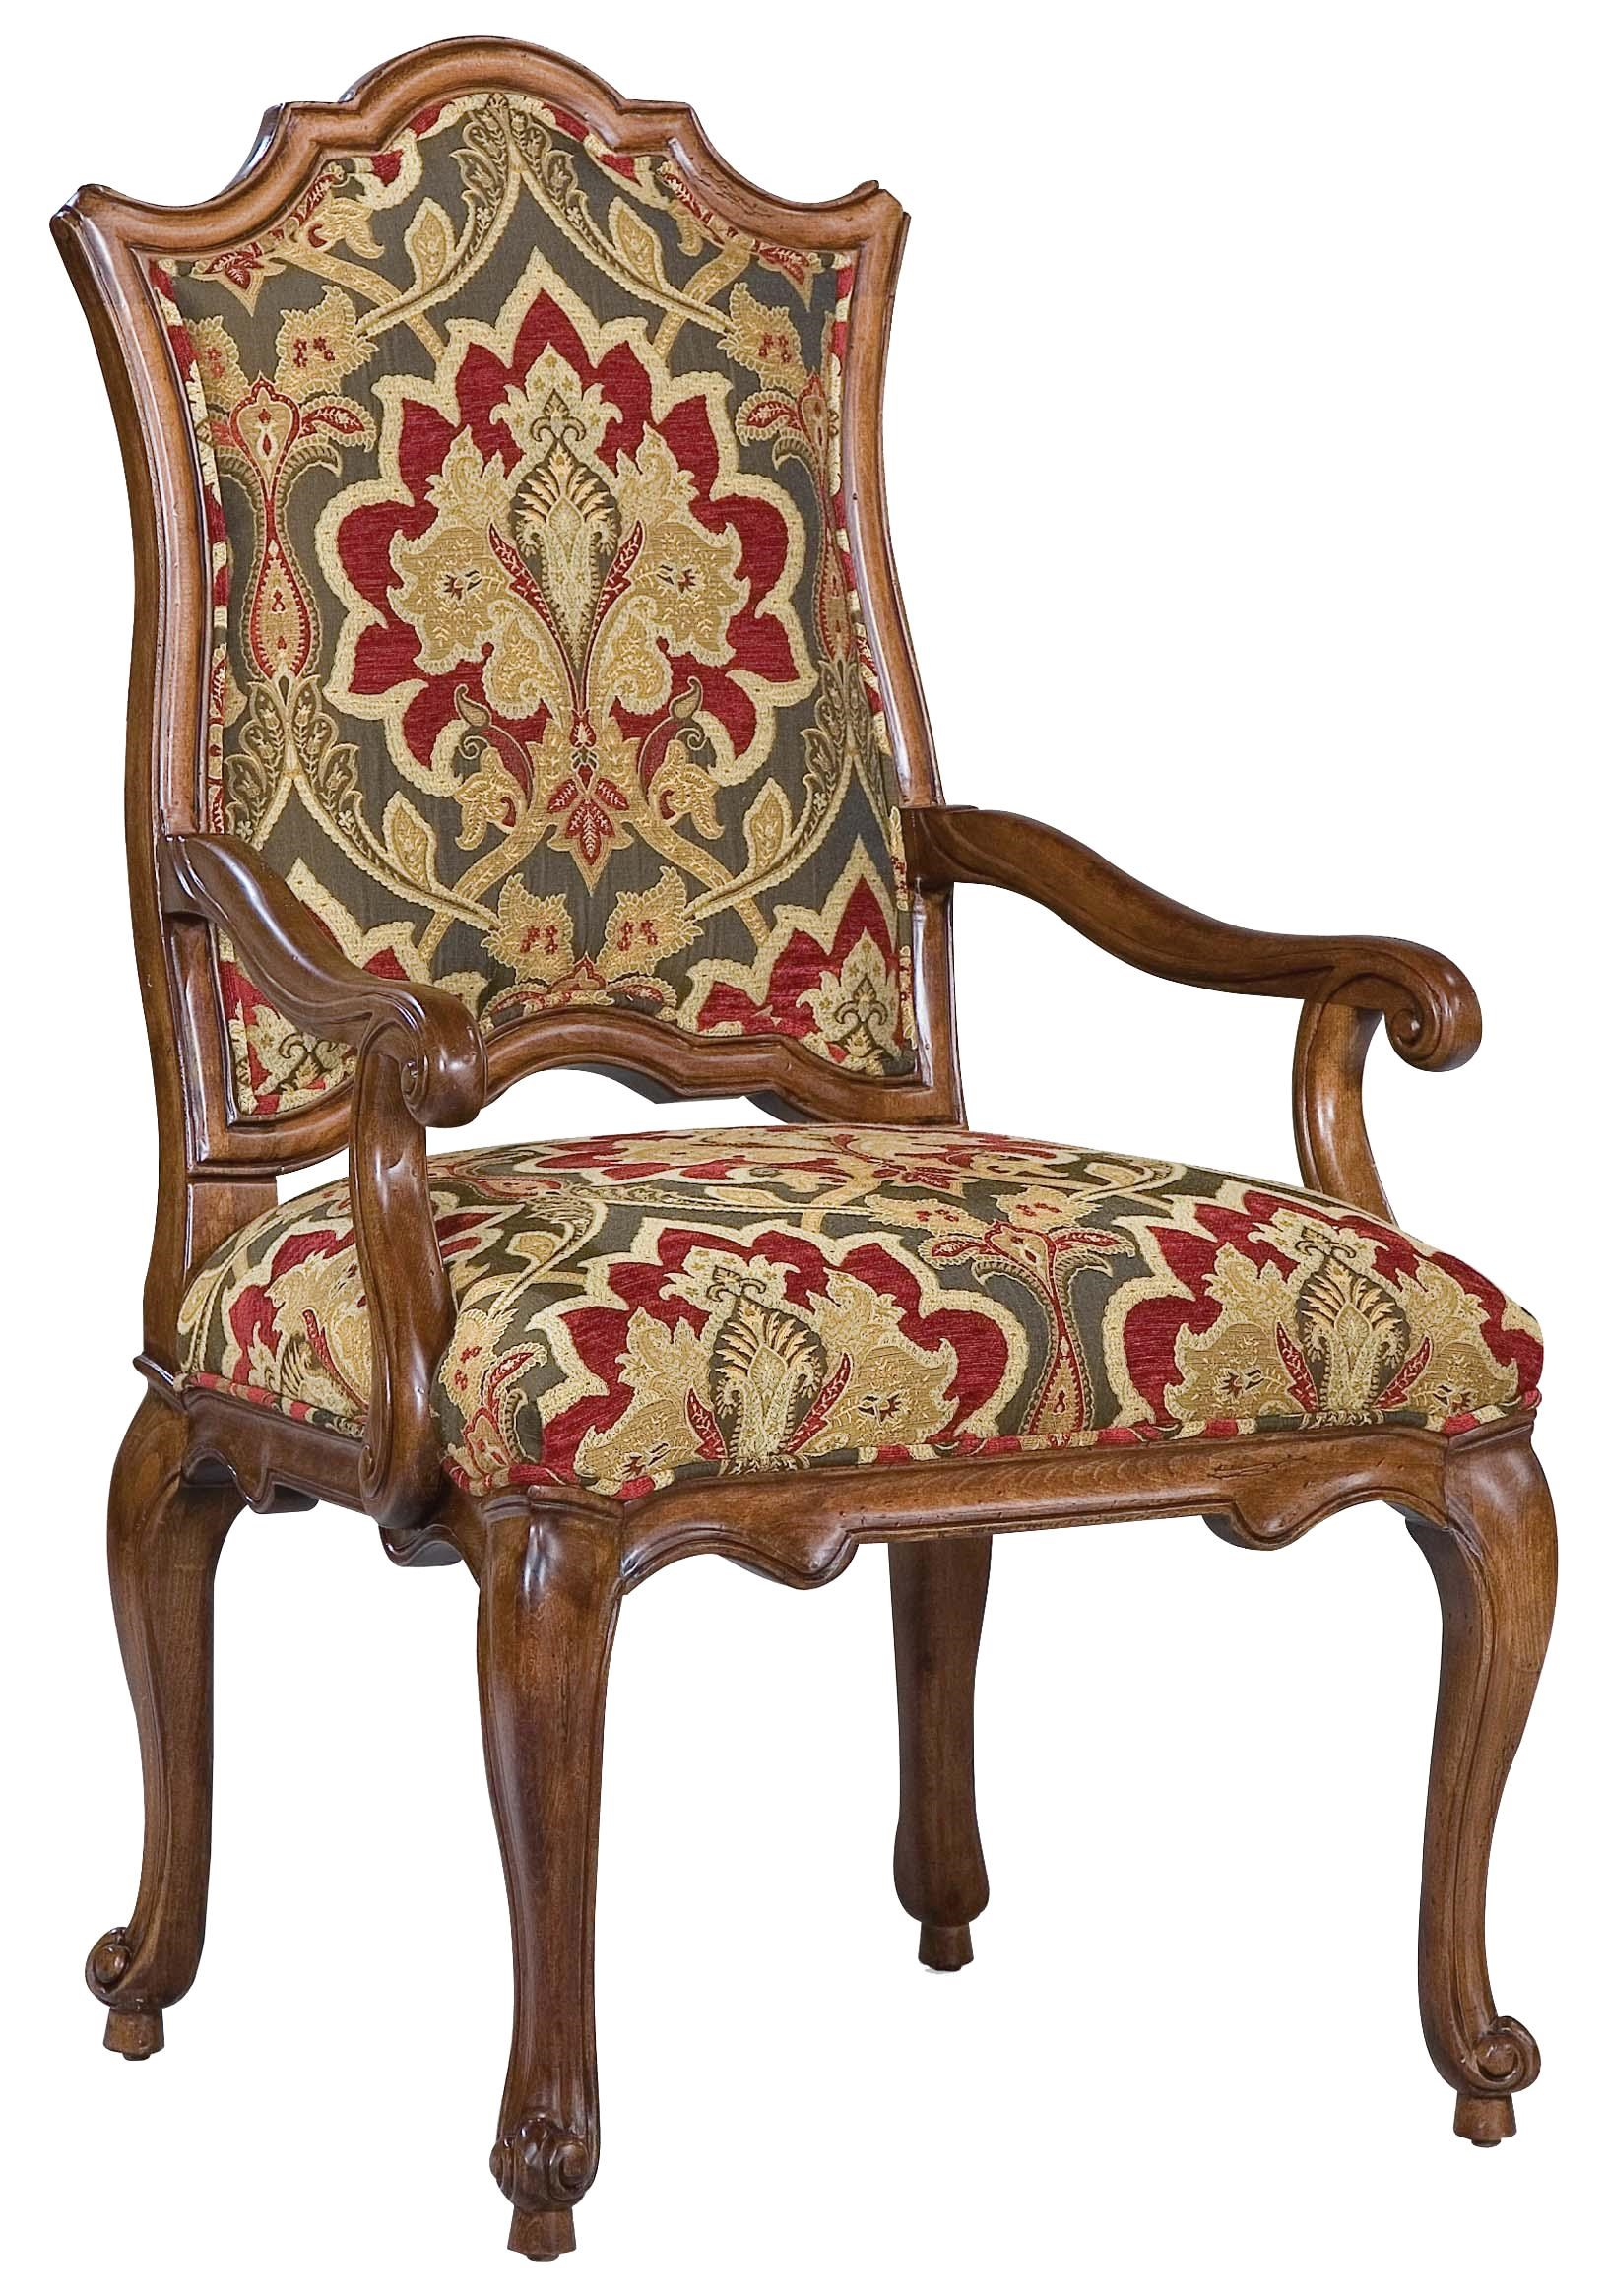 Accent Arm Chairs Chairs Victorian Accent Arm Chair With Curved Seat Back By Fairfield At Olinde S Furniture